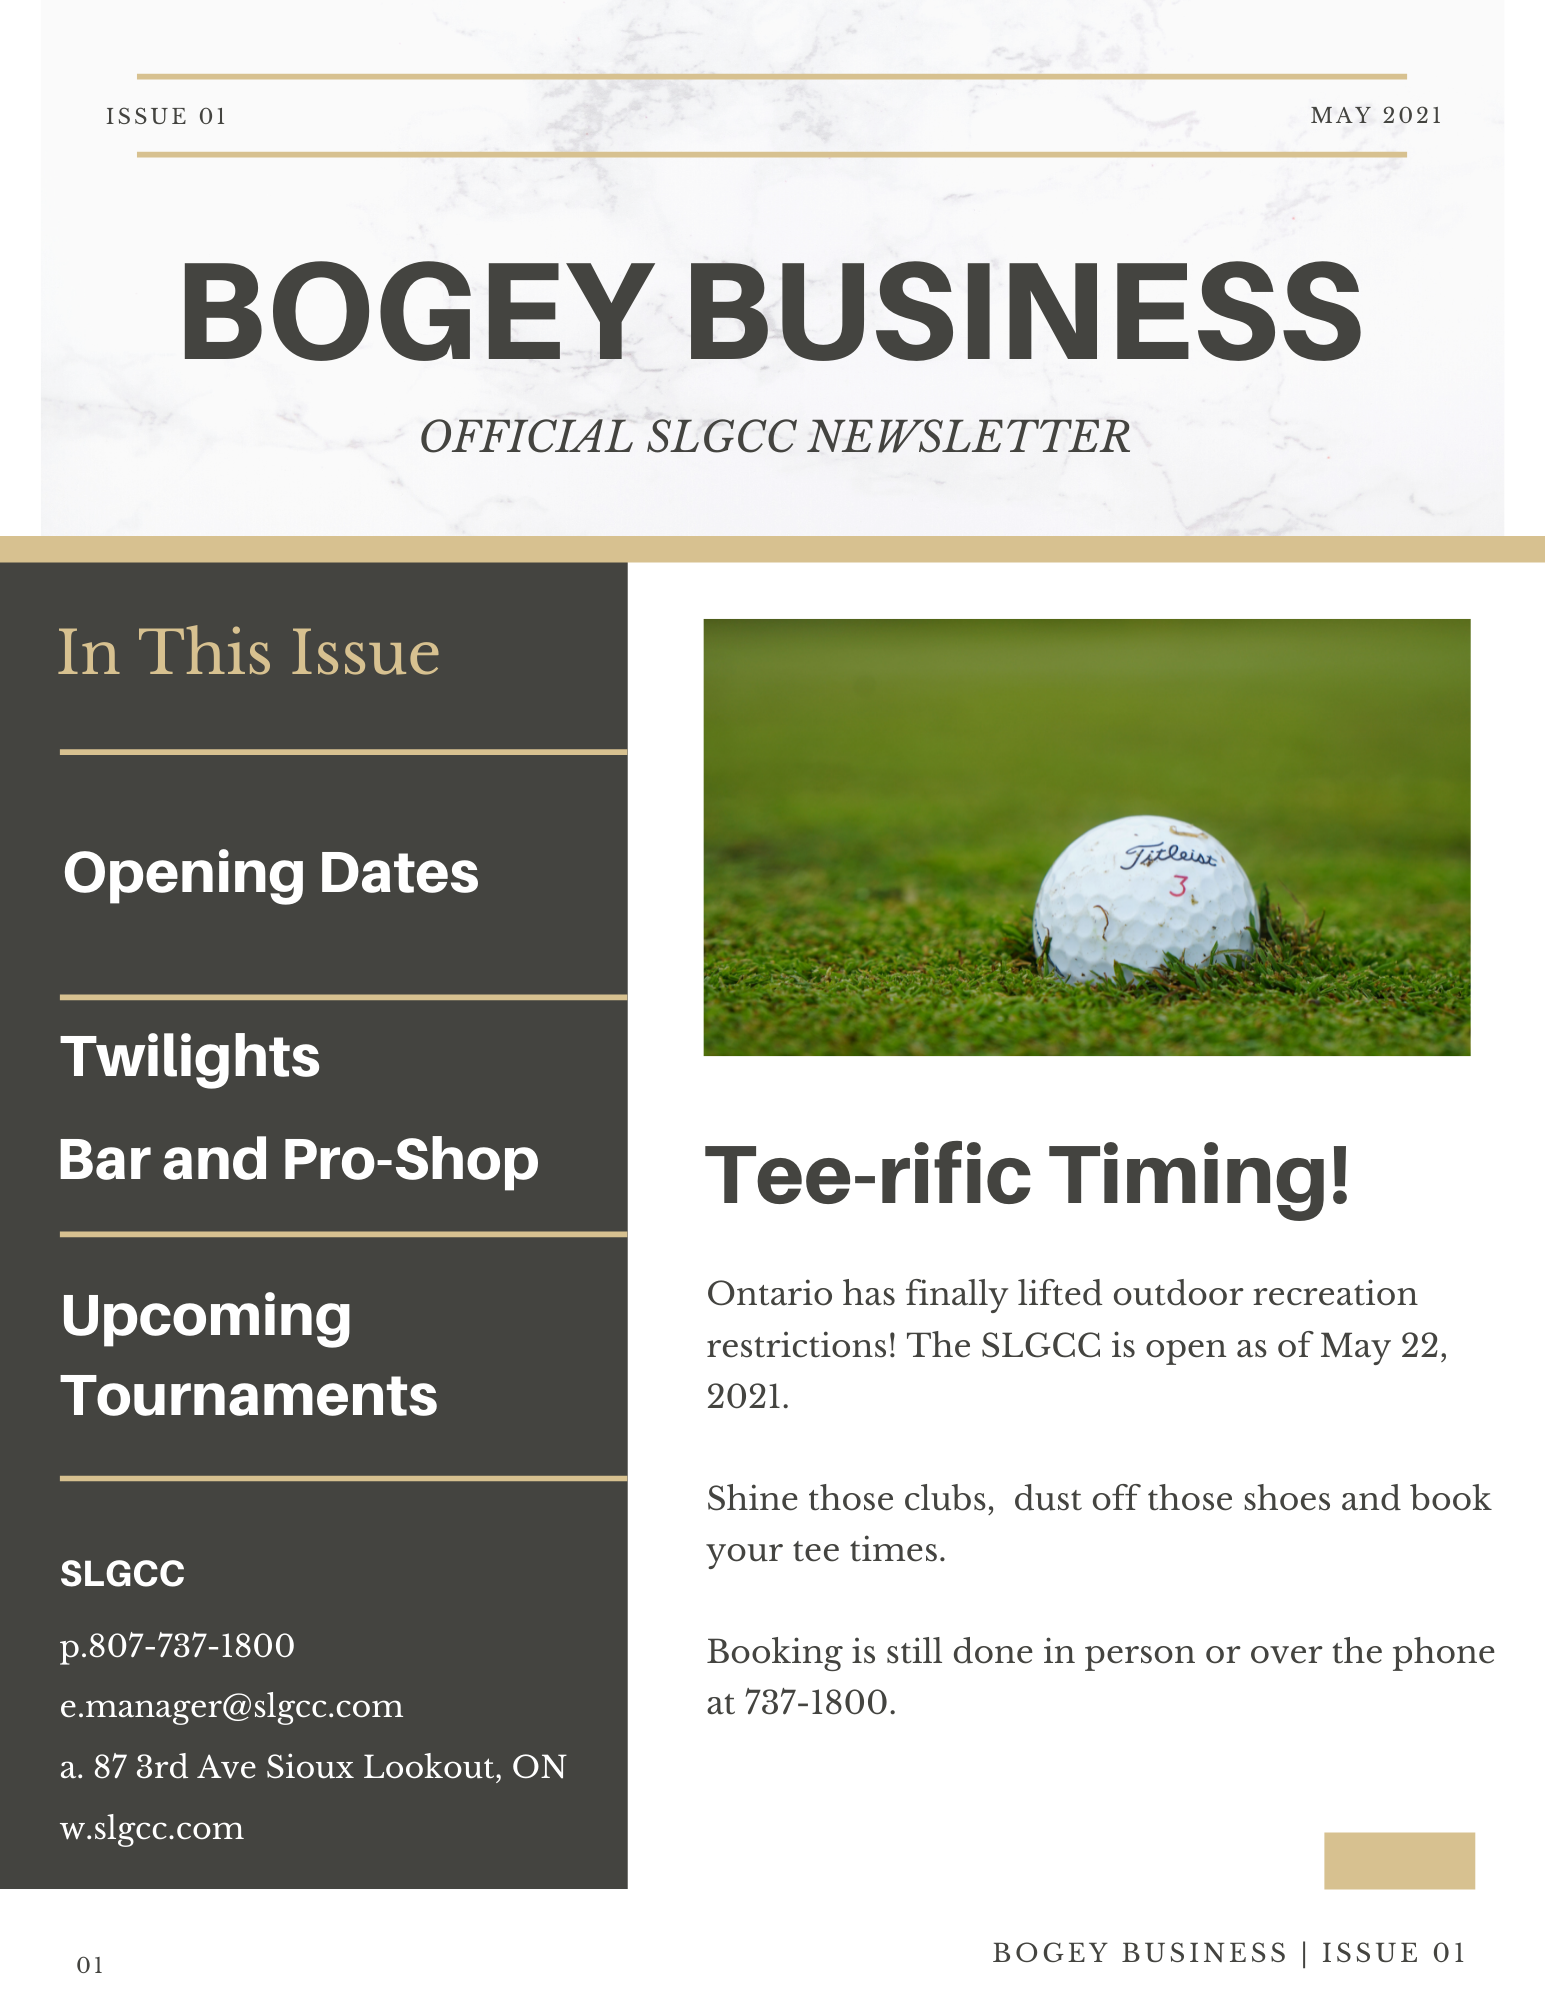 Bogey Business Issue 01